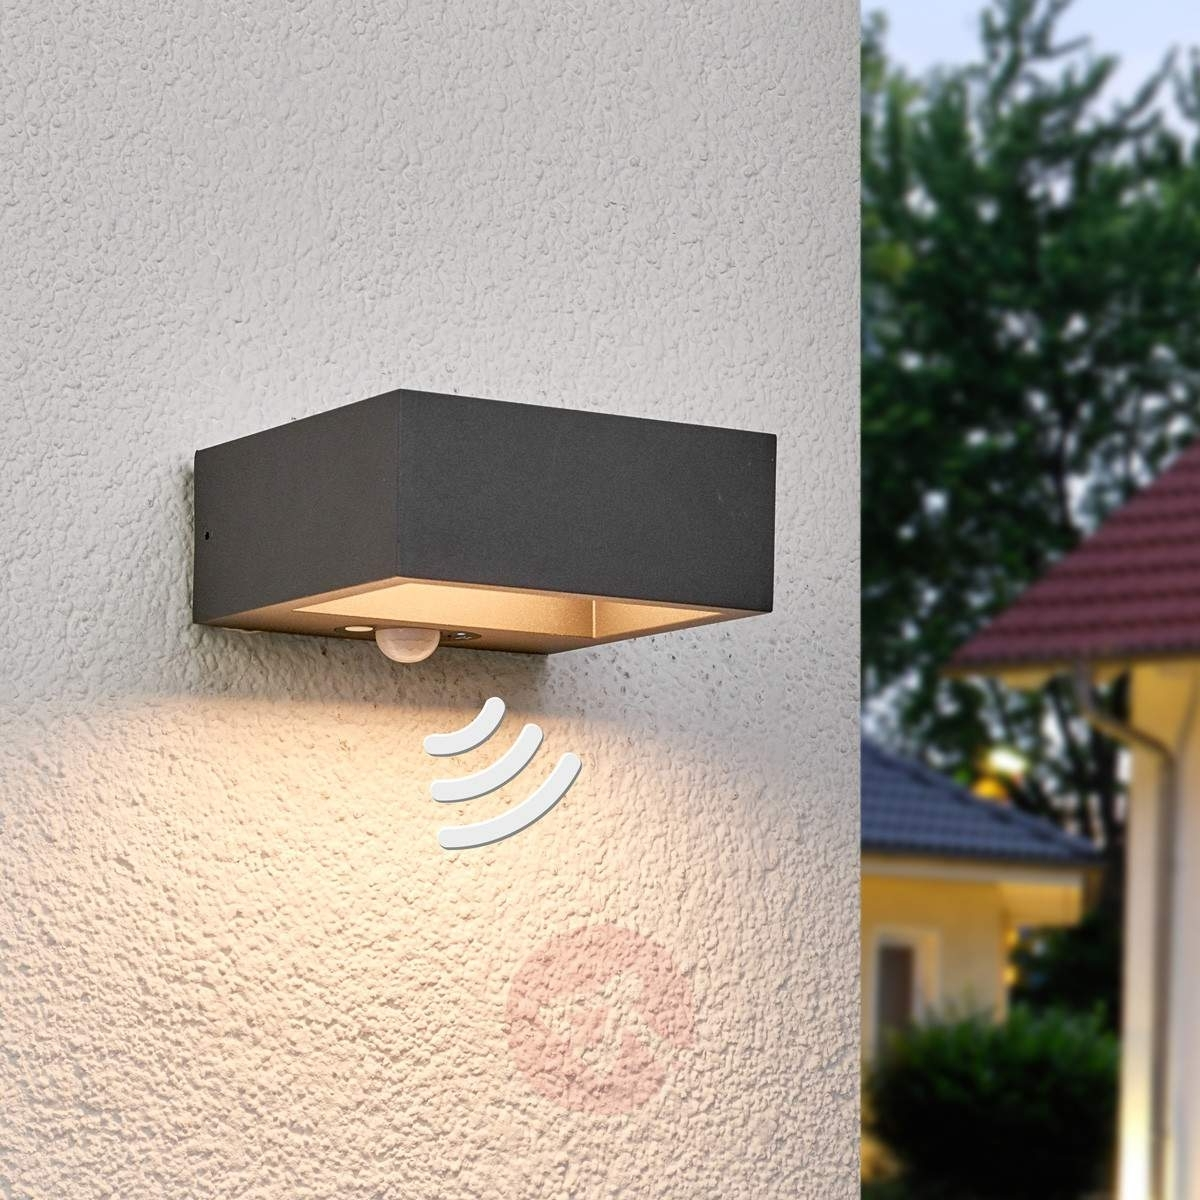 Most Popular Solar Powered Outdoor Wall Lights With Solar Powered Led Outdoor Wall Light Mahra, Sensor (View 7 of 20)